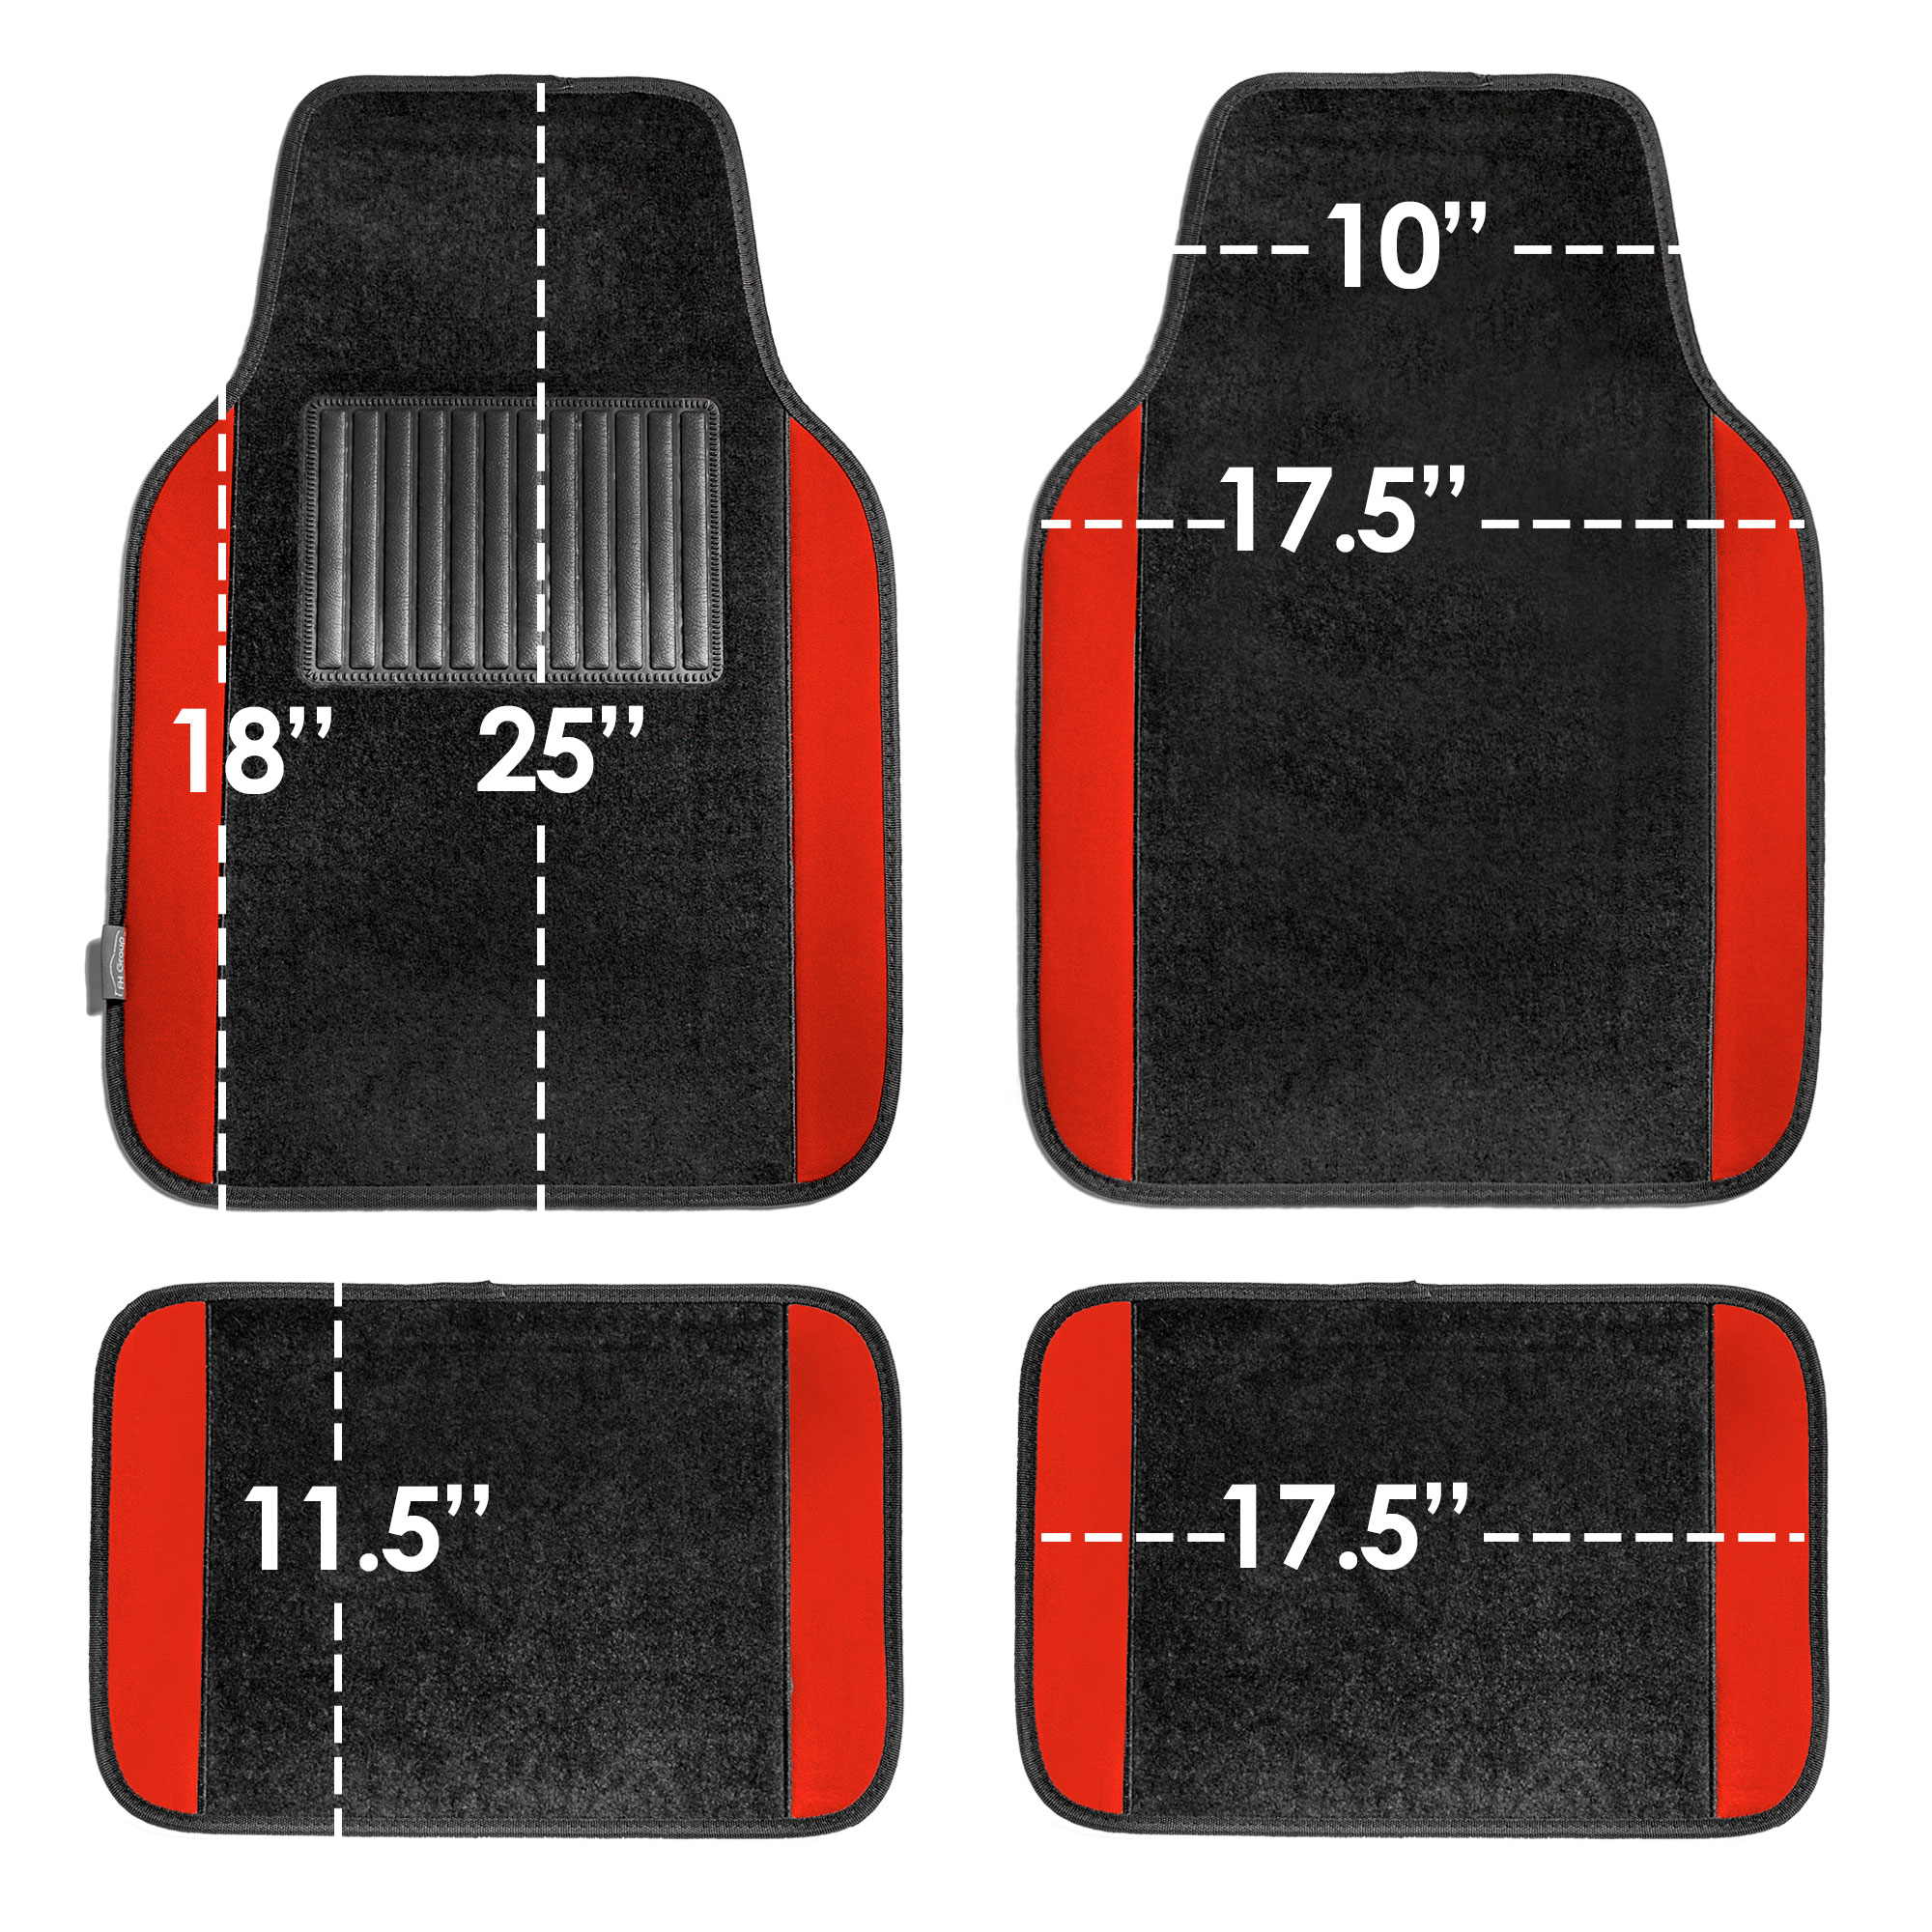 4pcs-Universal-Carpet-Floor-Mats-for-Car-SUV-Van-10-Color-Options-Full-Set thumbnail 59